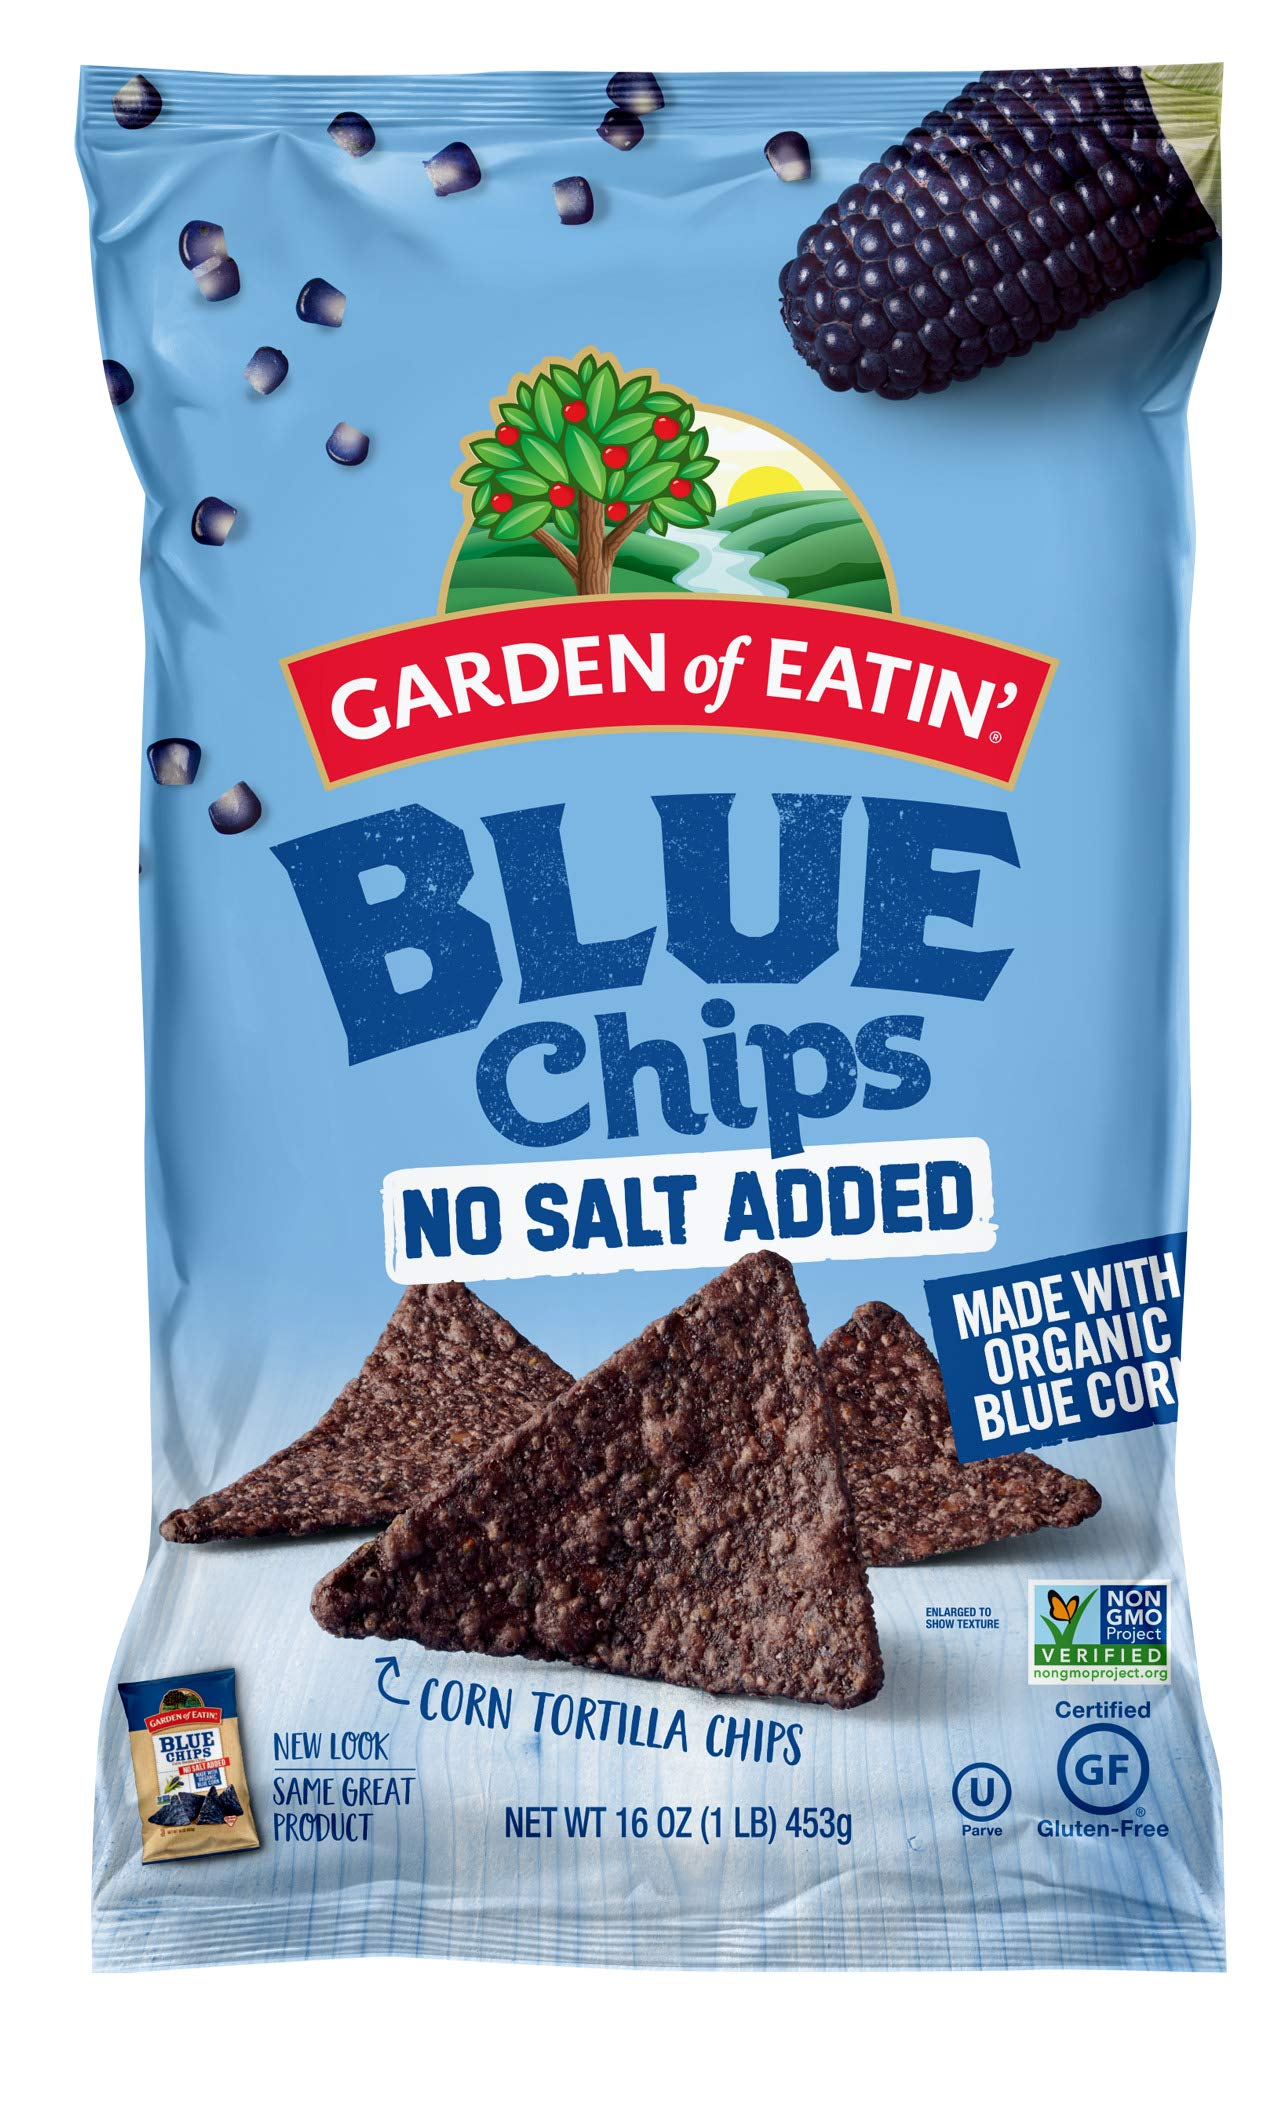 Garden of Eatin' No Salt Added Blue Corn Tortilla Chips, 16 oz. (Pack of 12) (Packaging May Vary) by Garden of Eatin'